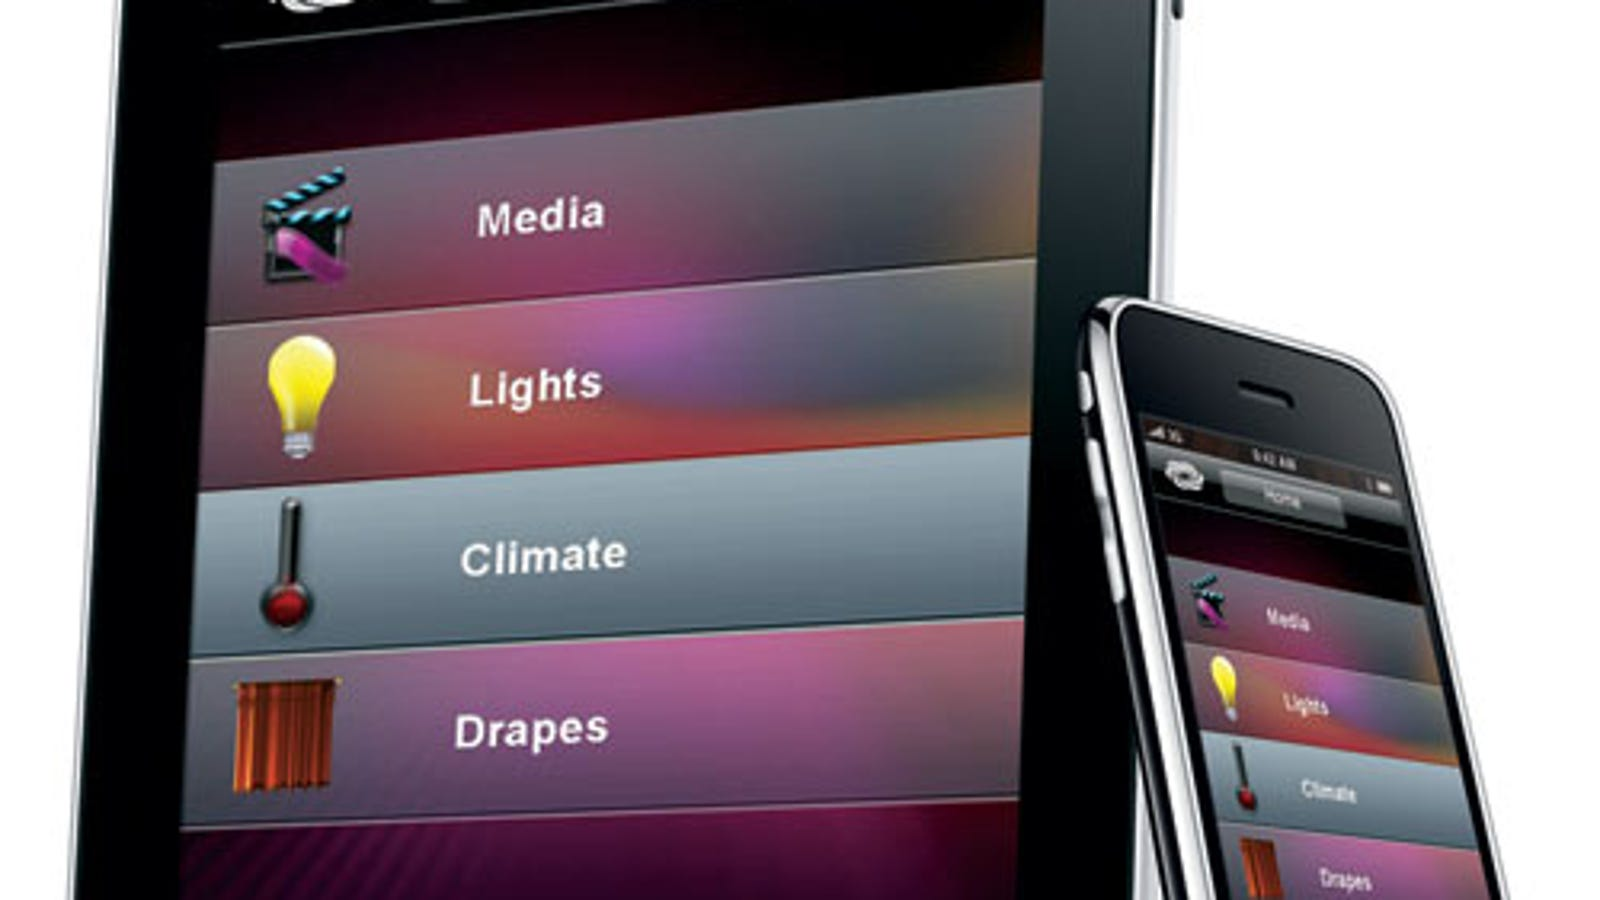 Crestron Home Automation Systems Are Now iPad Compatible